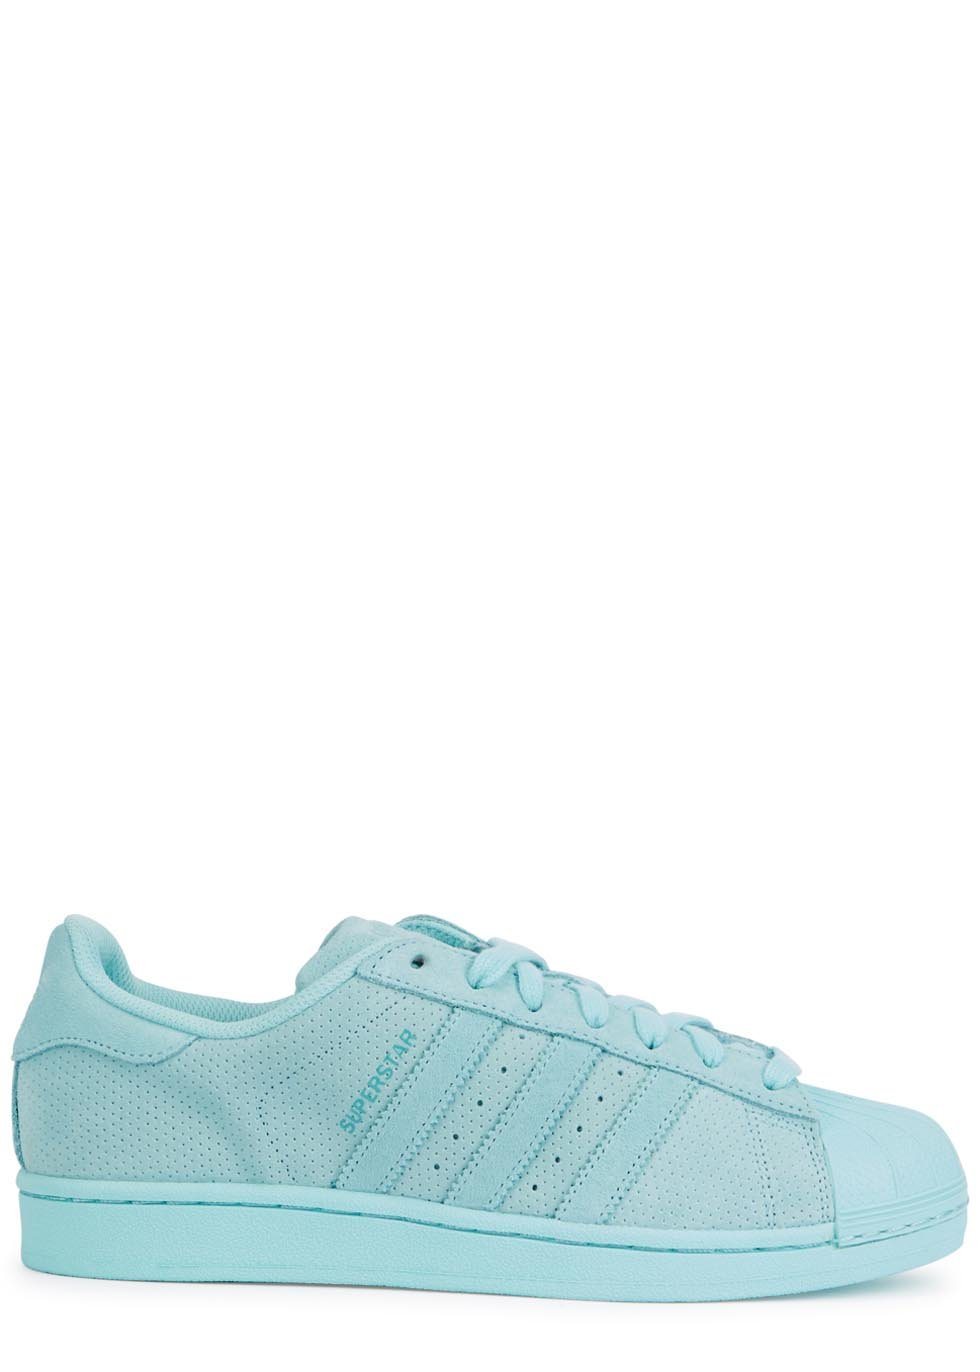 483cc5580370 amazon adidas originals superstar mint suede trainers in blue lyst a2aaa  57d33